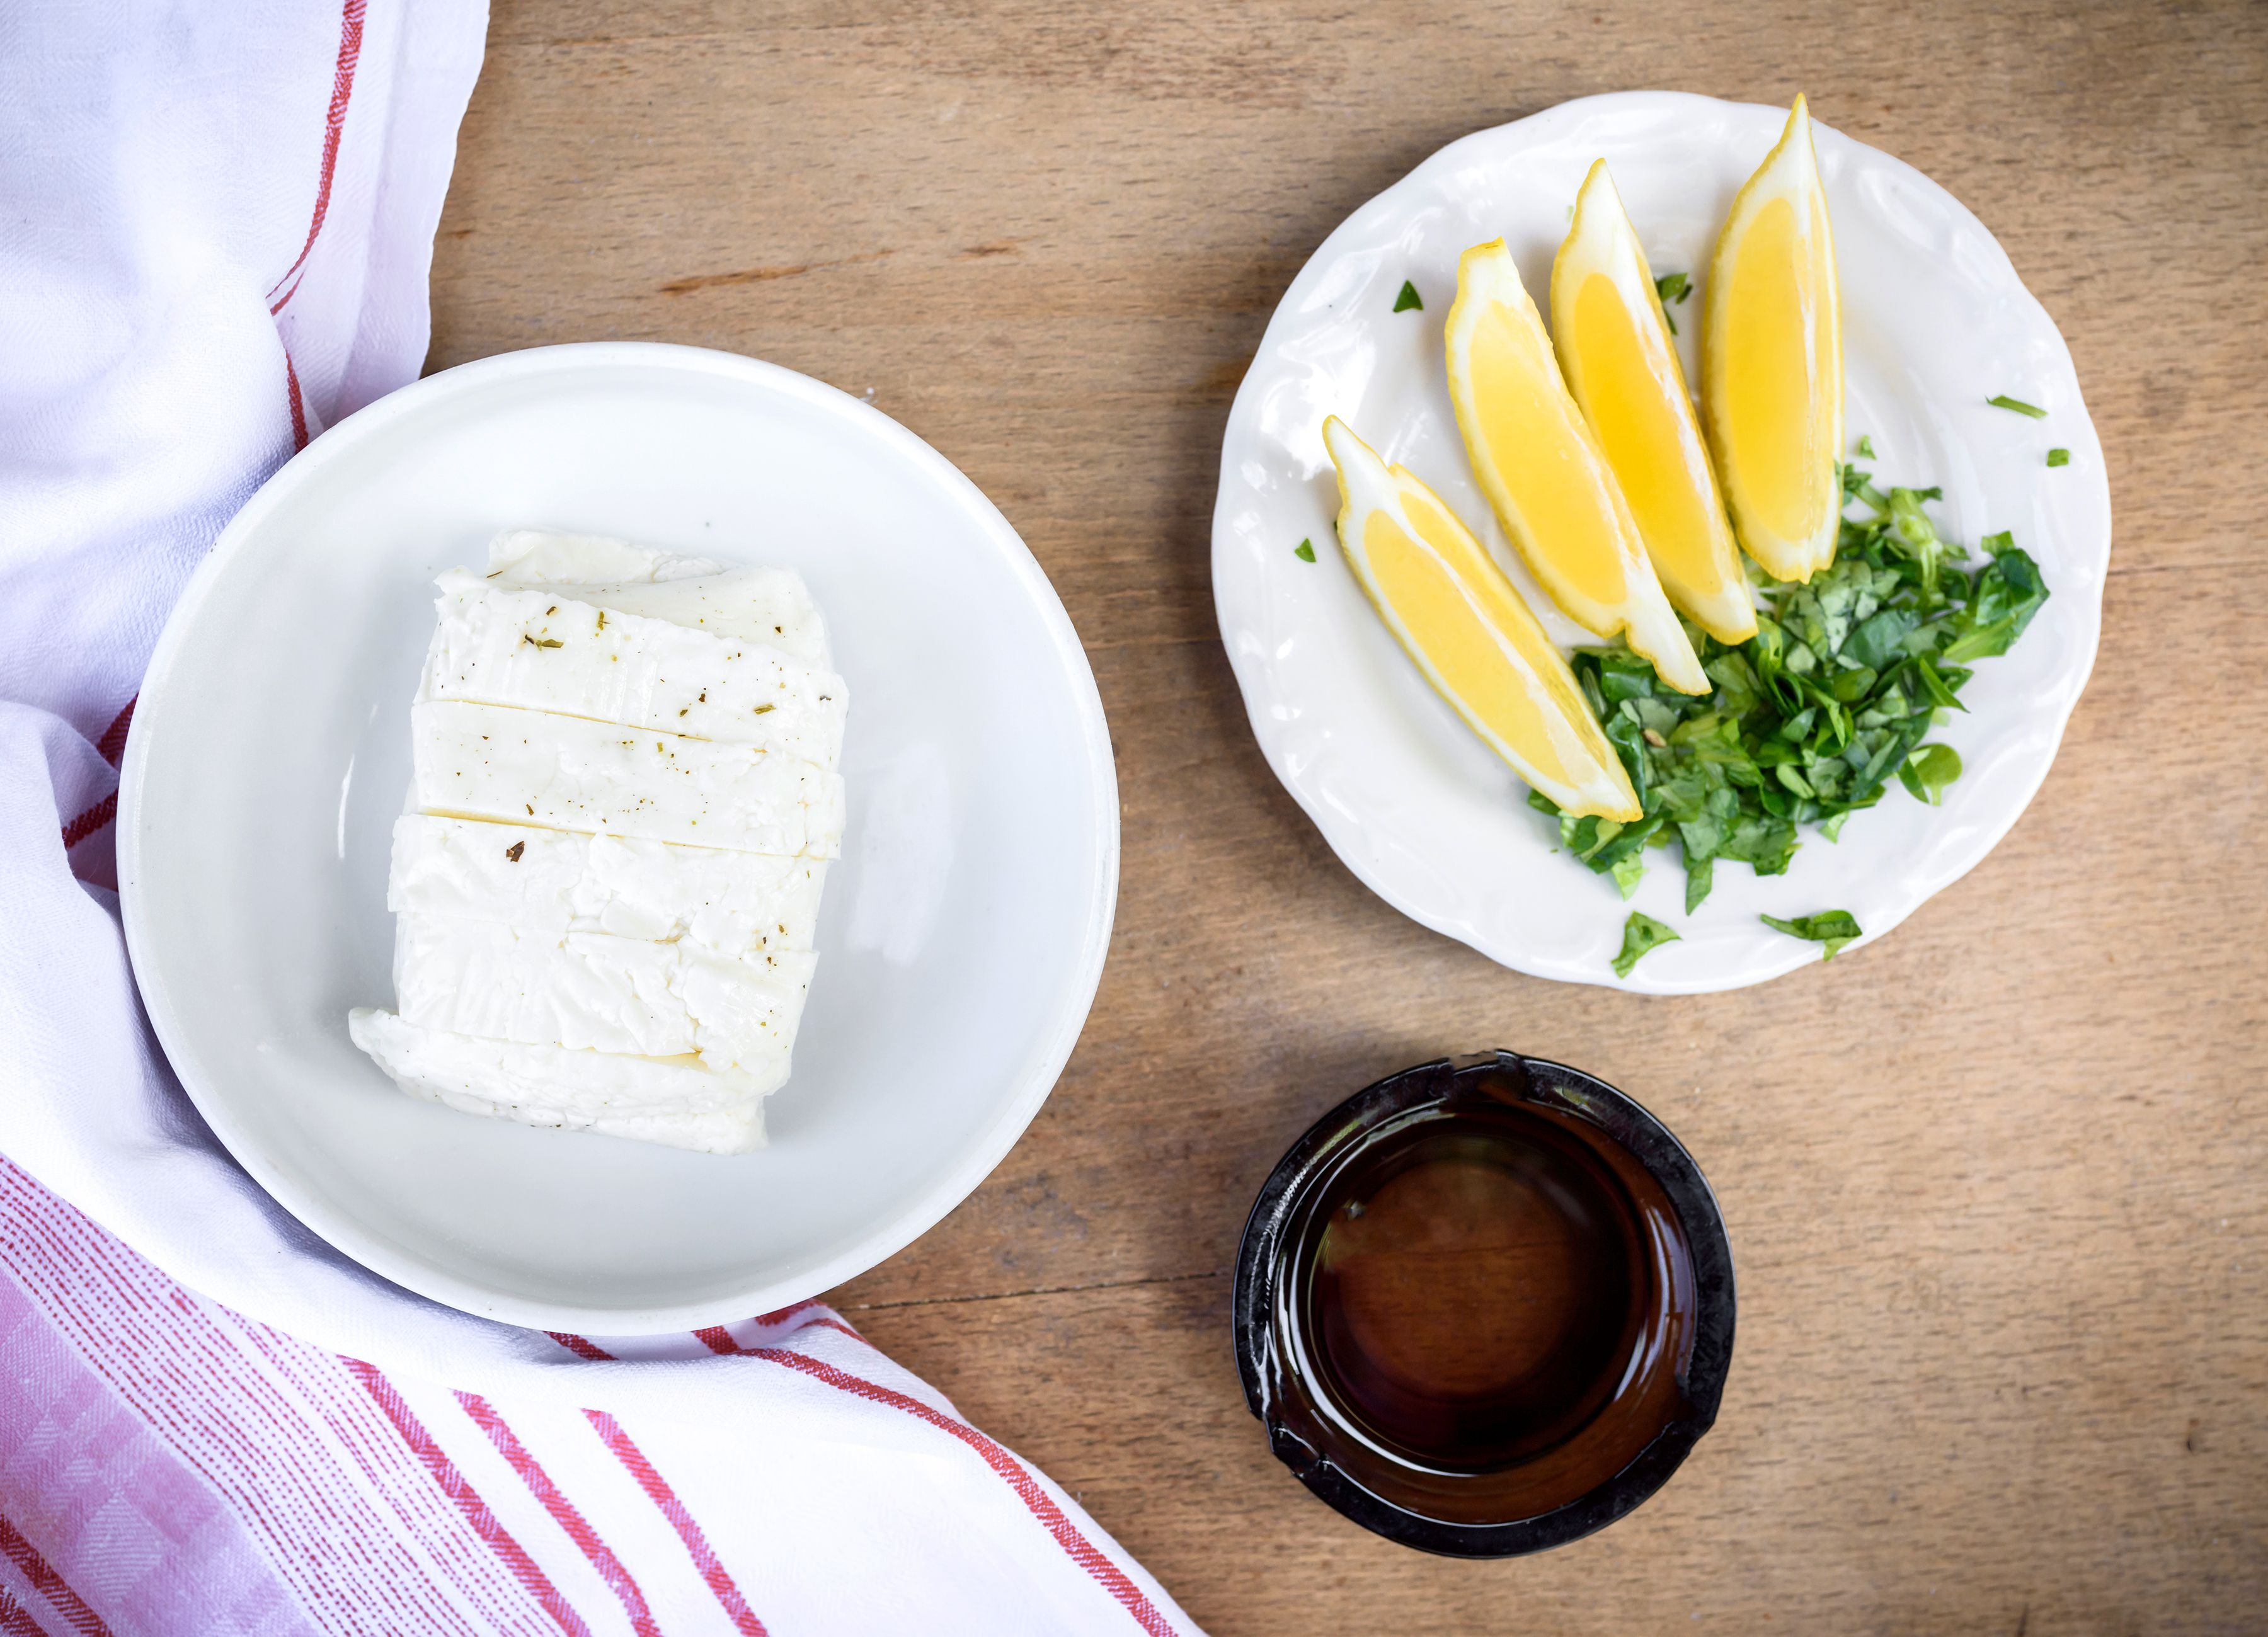 Ingredients for grilled halloumi